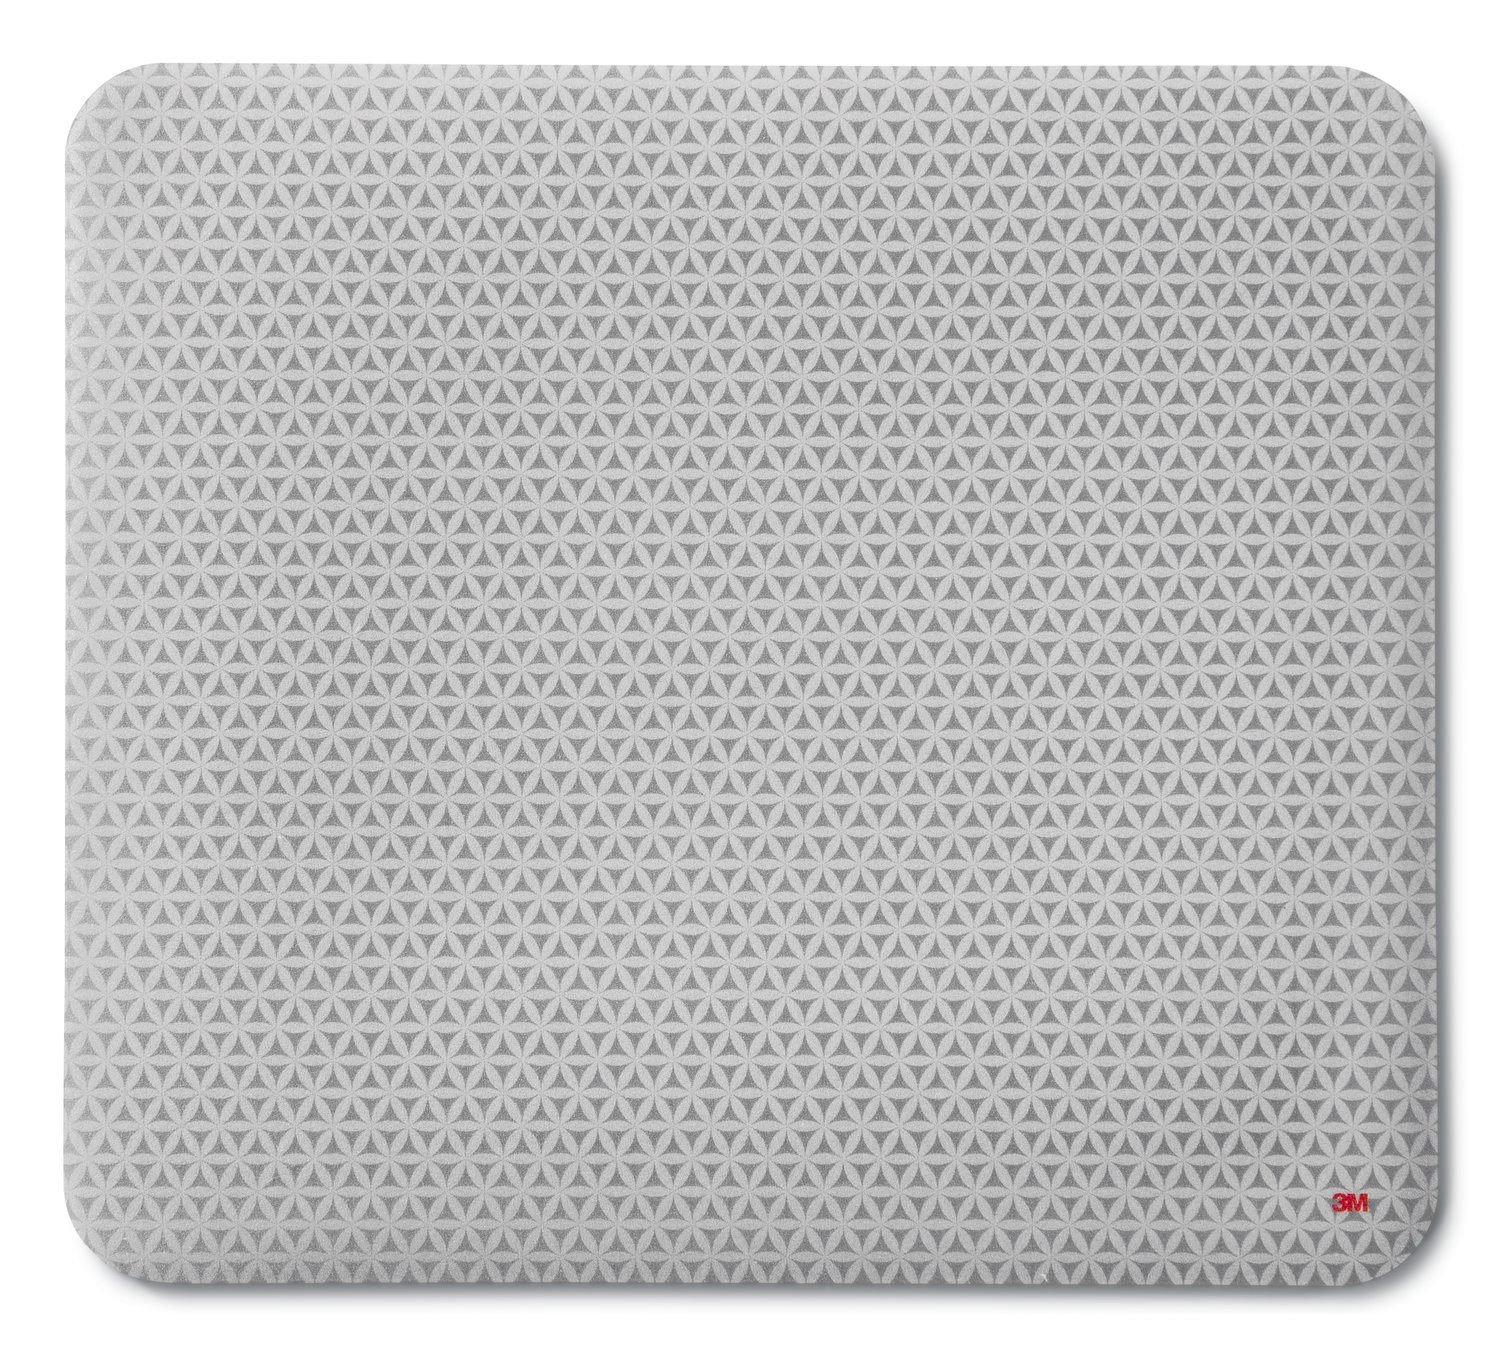 3M Precise Mouse Pad Enhances the Precision of Optical Mice at Fast Speeds and Extends the Battery Life of Wireless Mice up to 50%, 9 in x 8 in (MP114-BSD1)